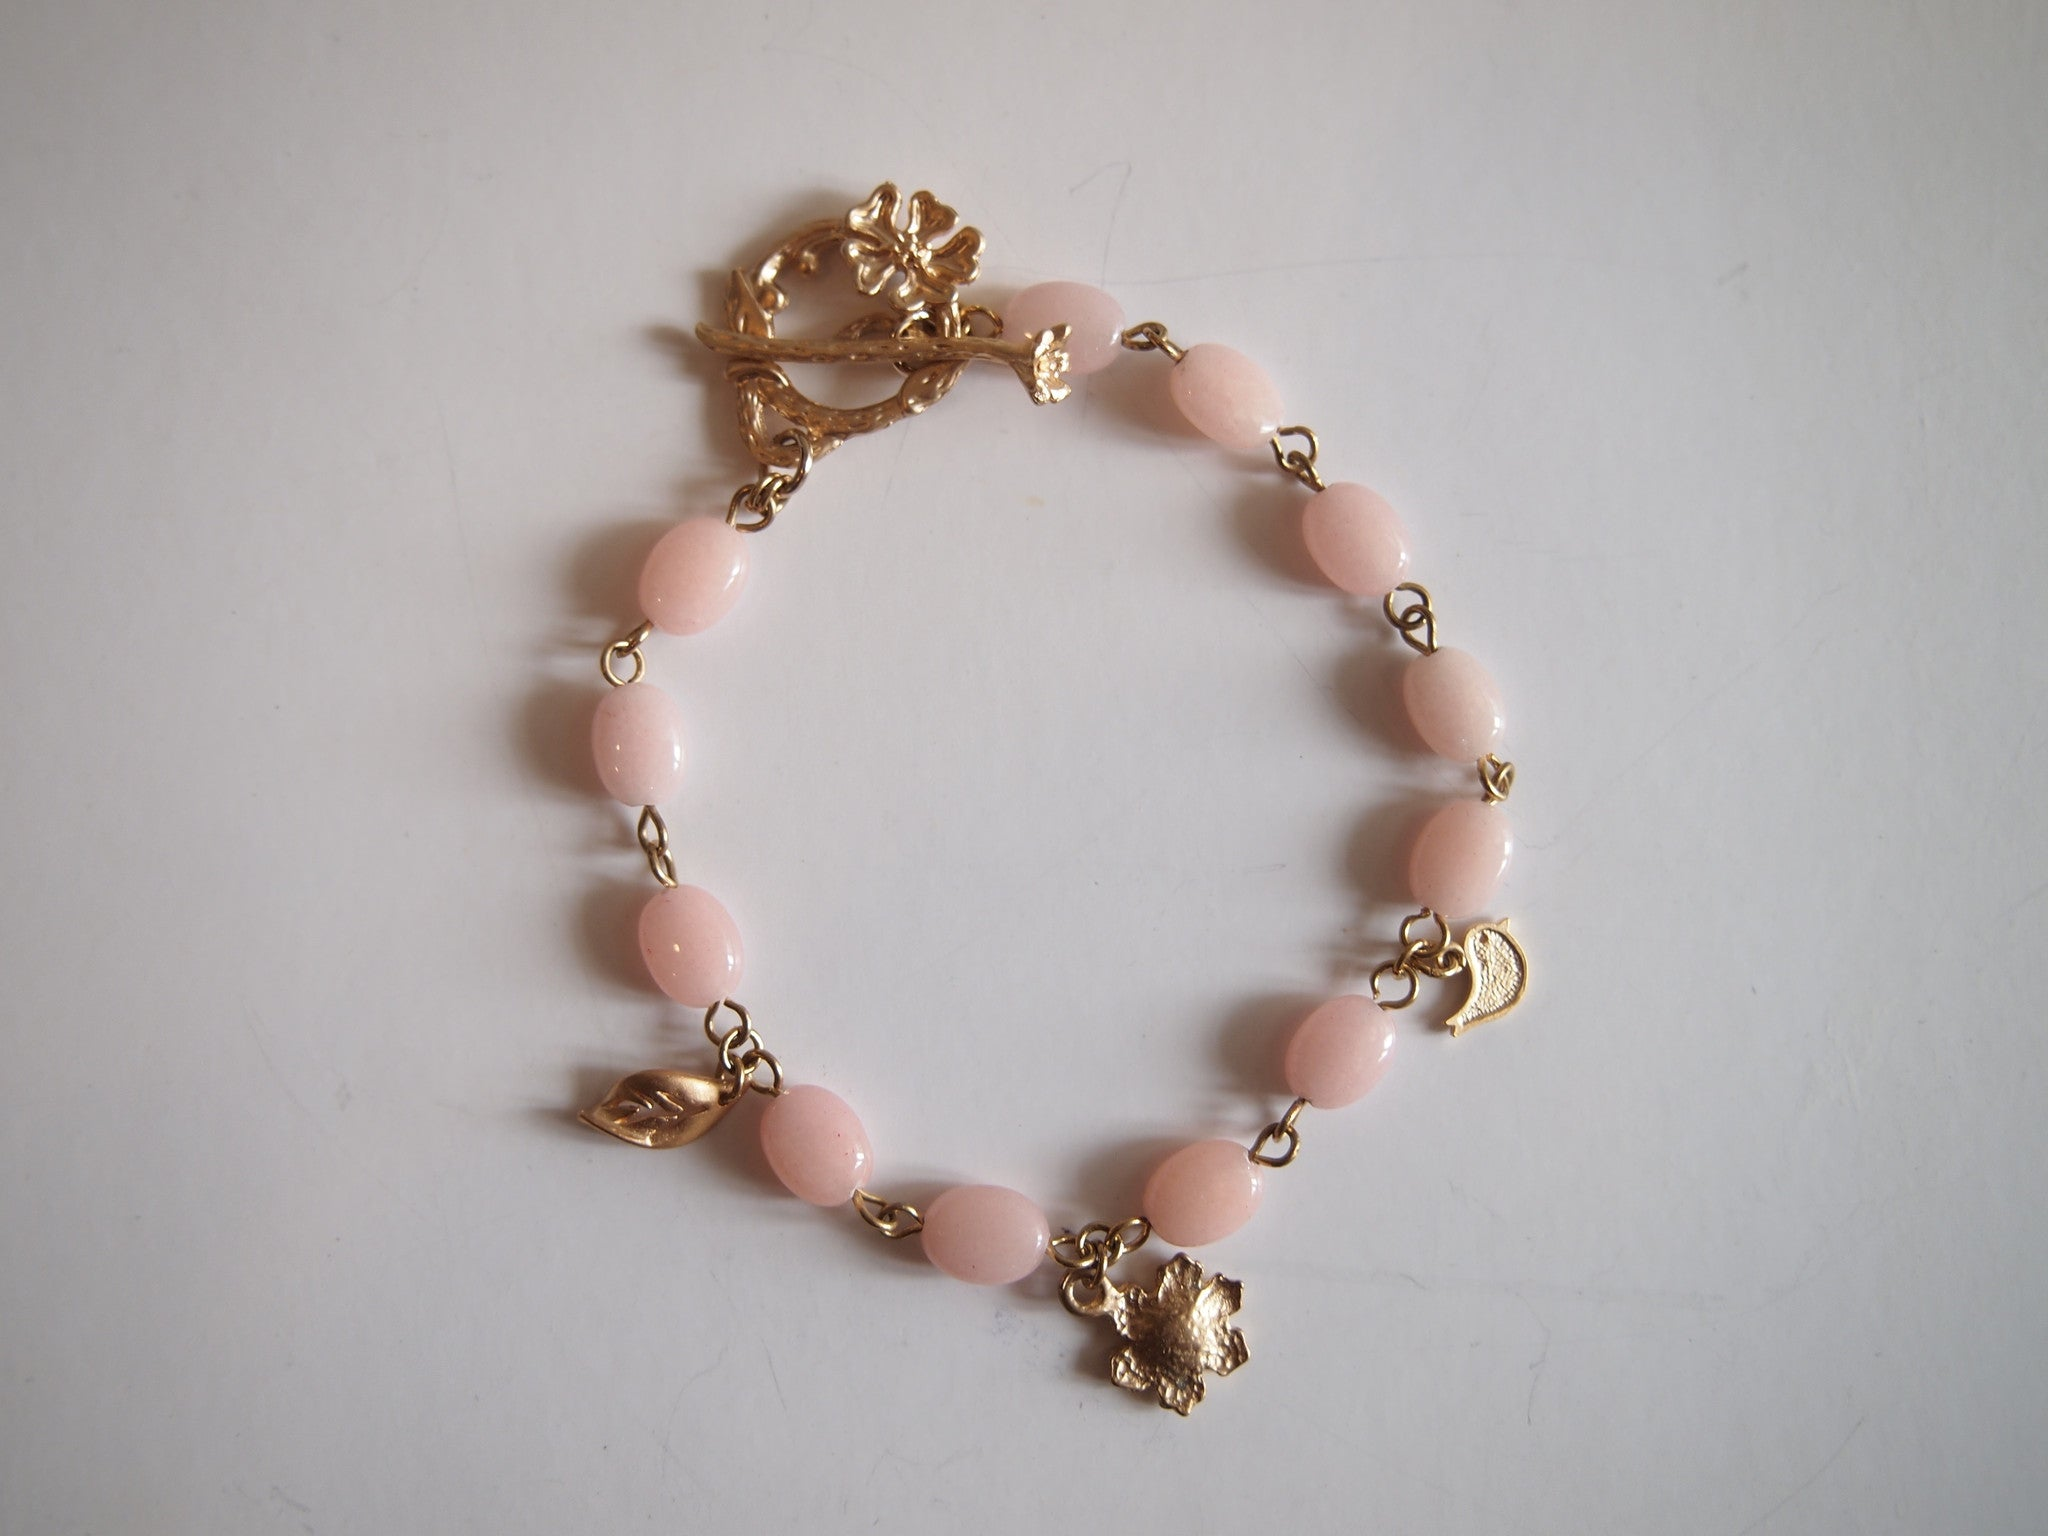 Handmade jewelry bracelet with pink quartz and tree charm